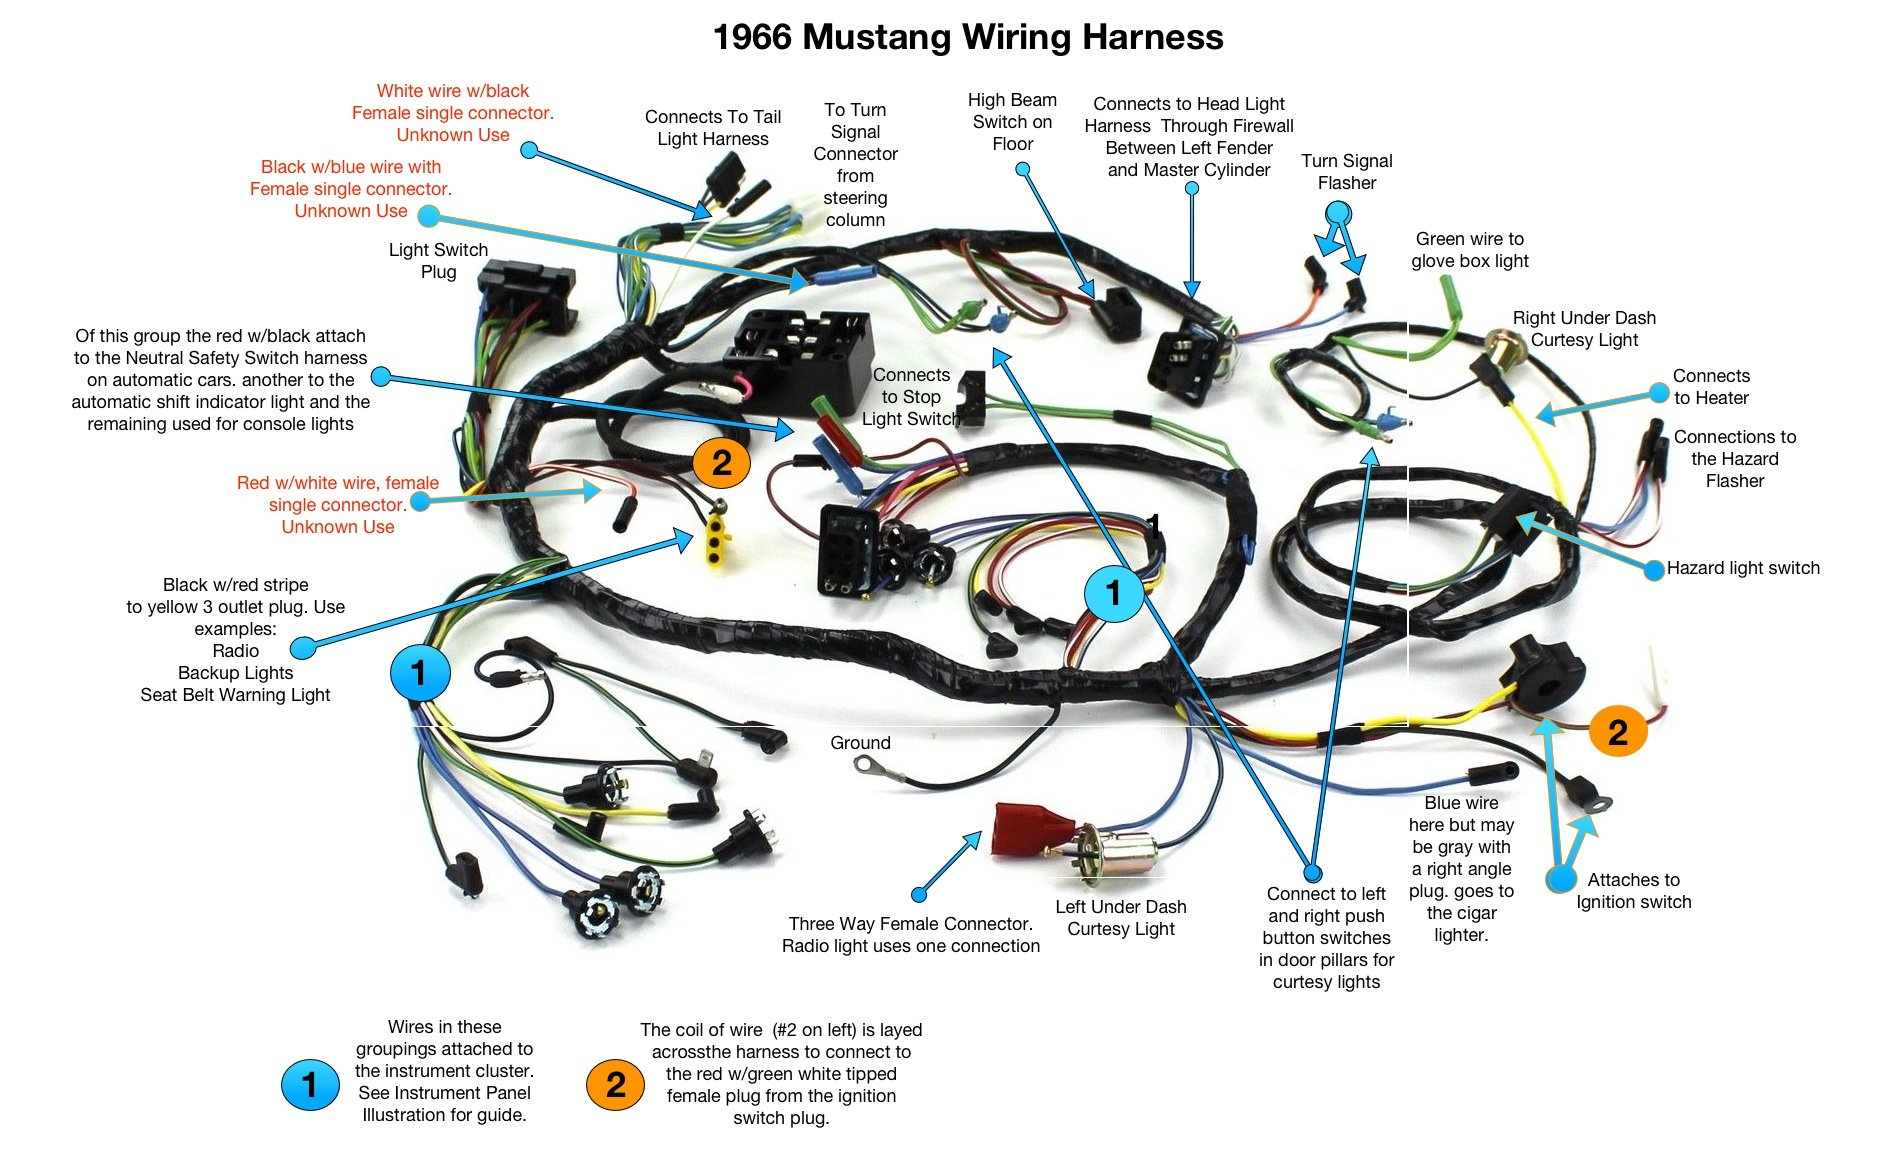 Mustang Wiring Harness Diagram Schemes Complete Car